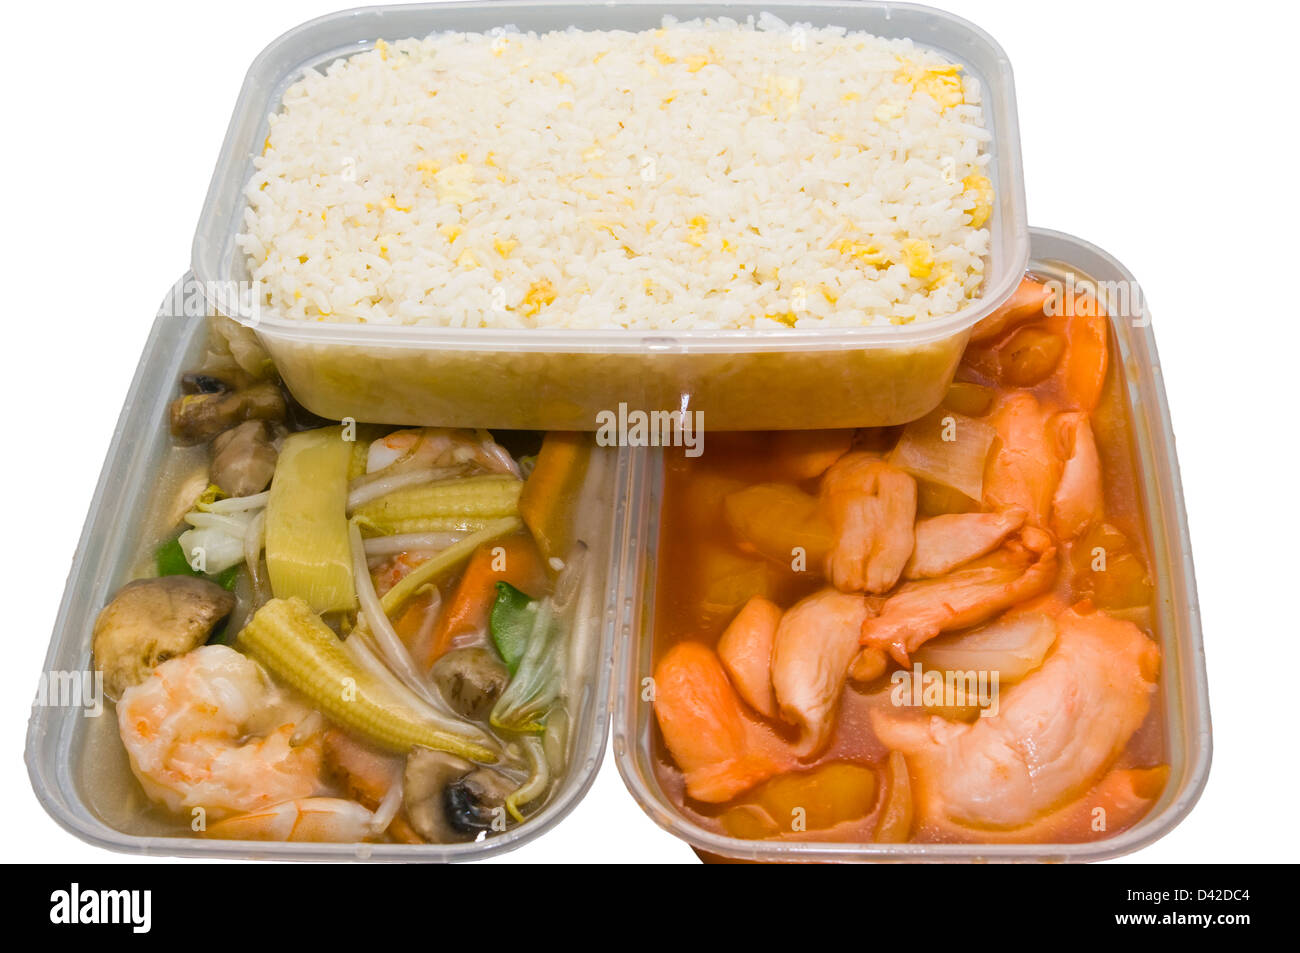 Chinese Take Away Food In Plastic Containers - Stock Image